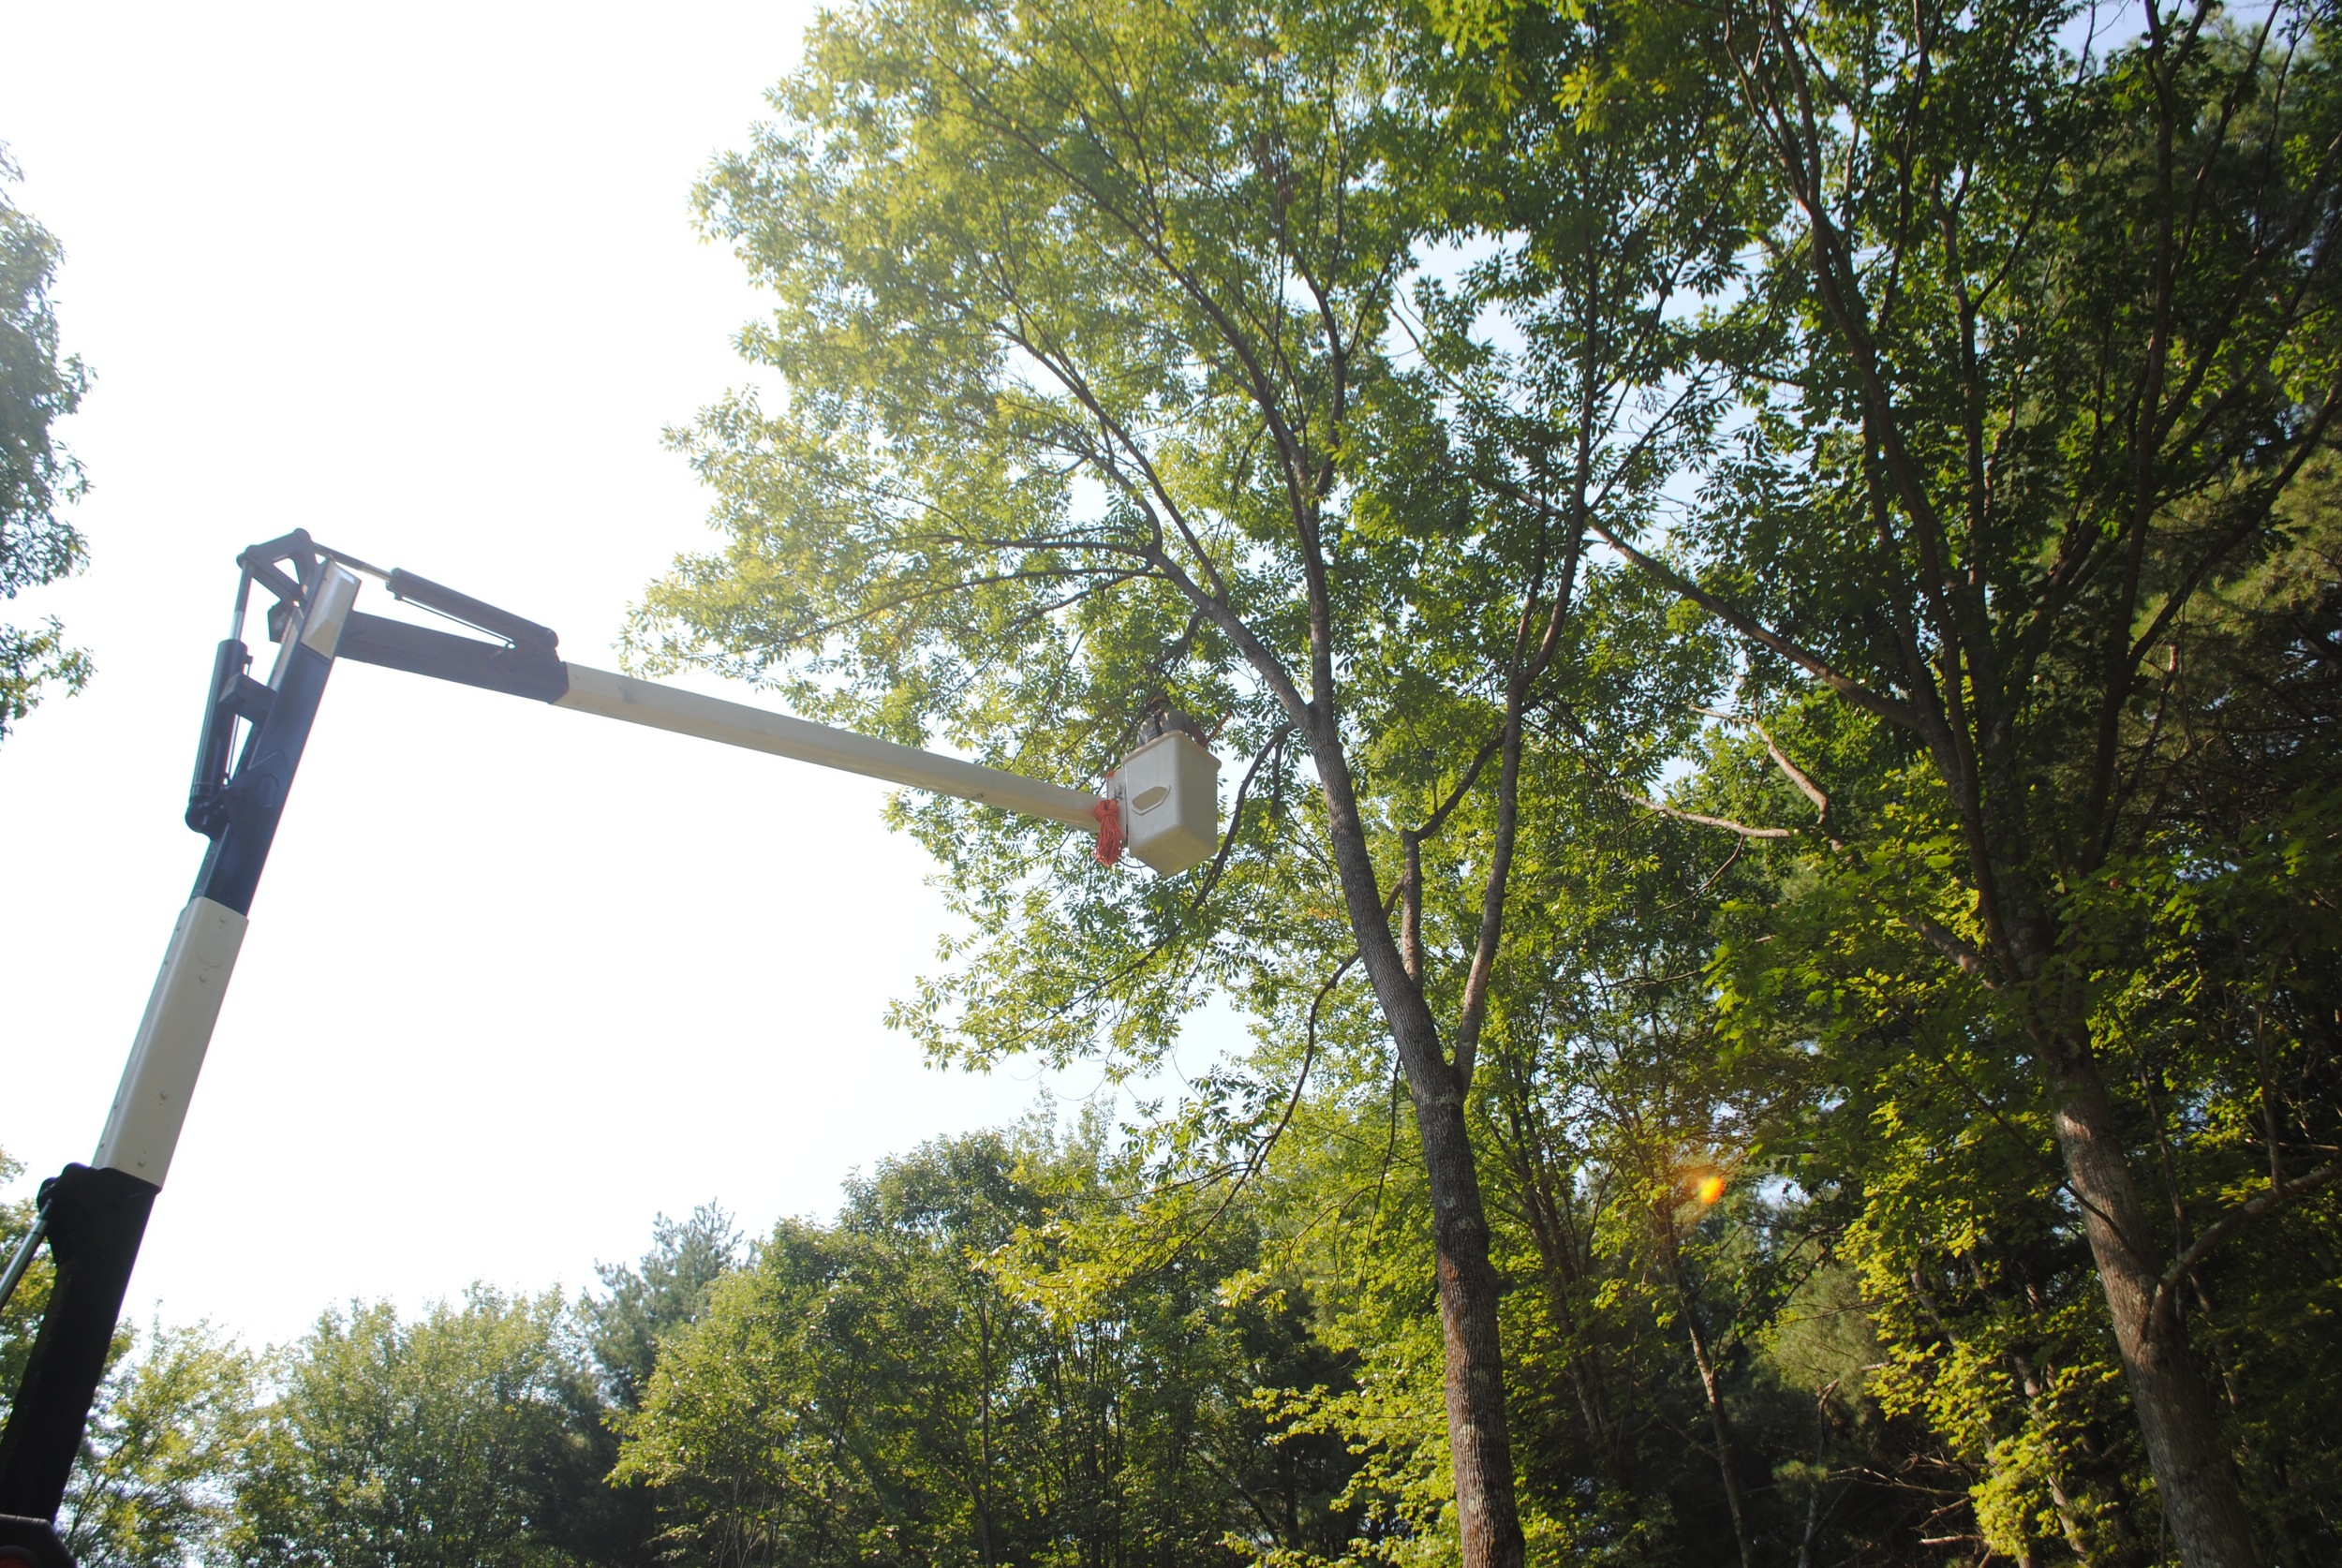 Using our 60' aerial bucket truck, we are able to prune the dead branches.